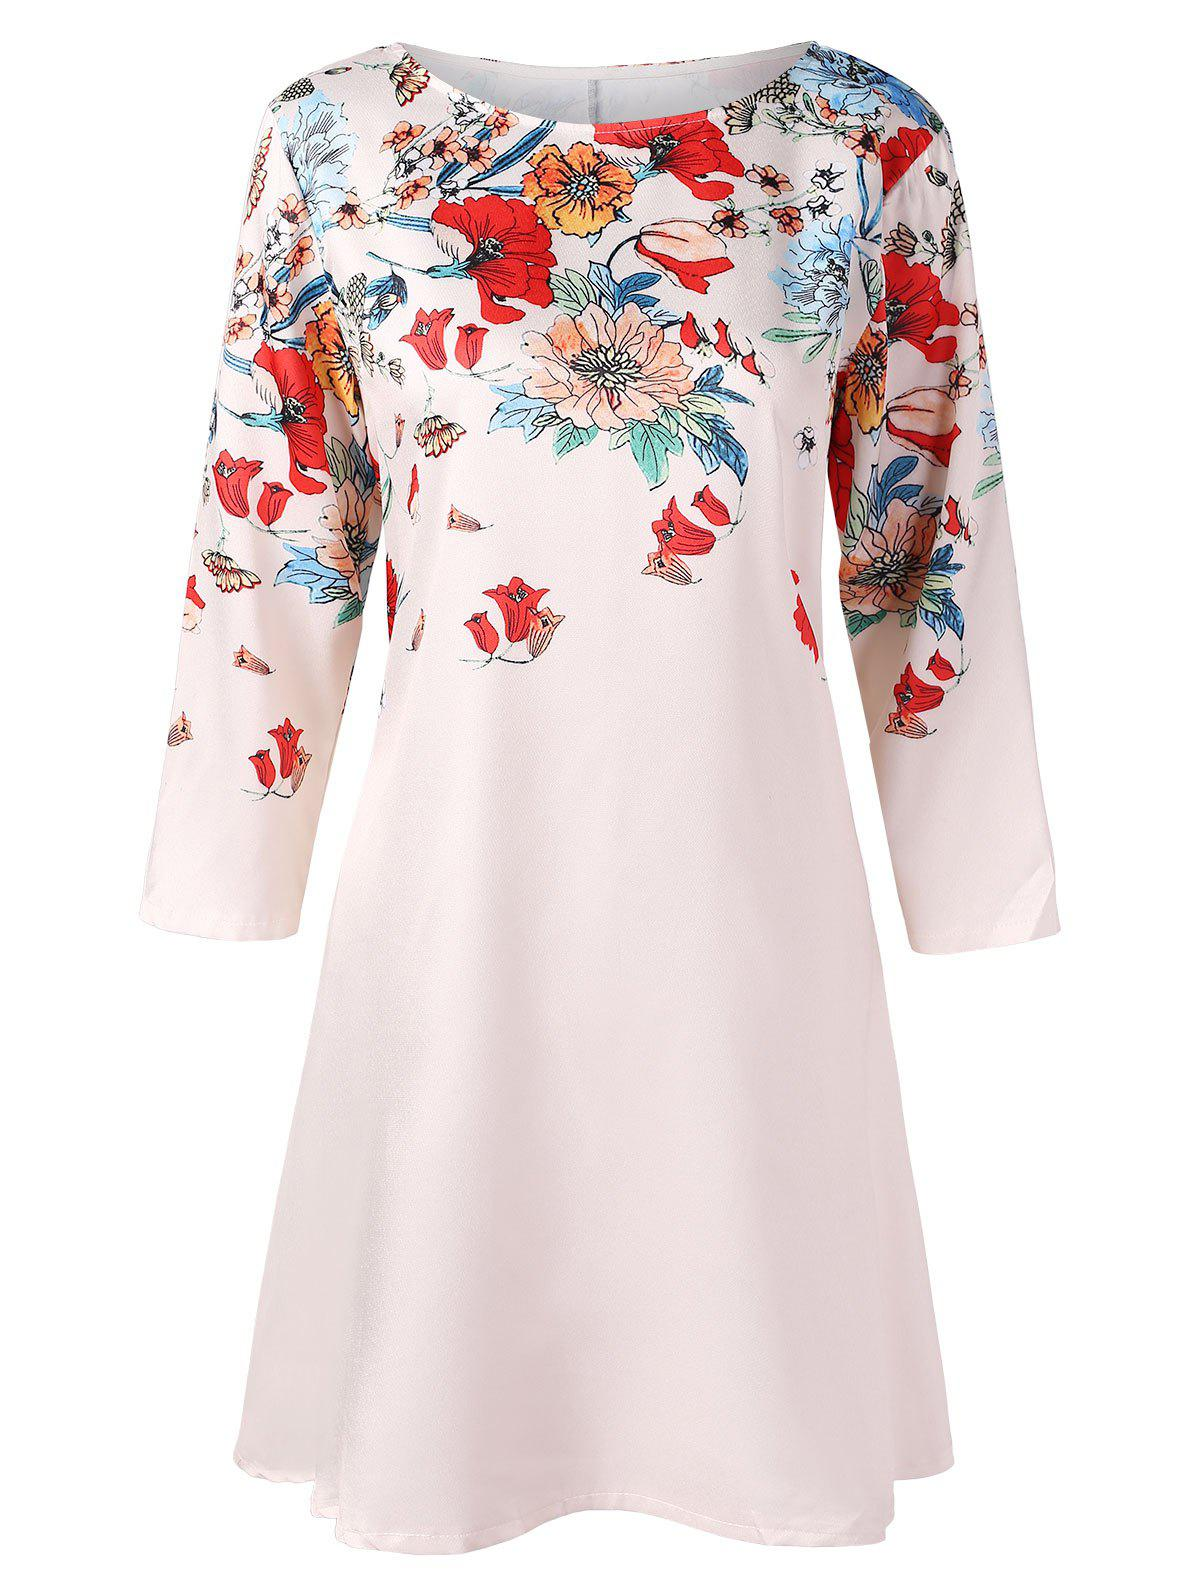 Floral Print Shift Dress - MILK WHITE L